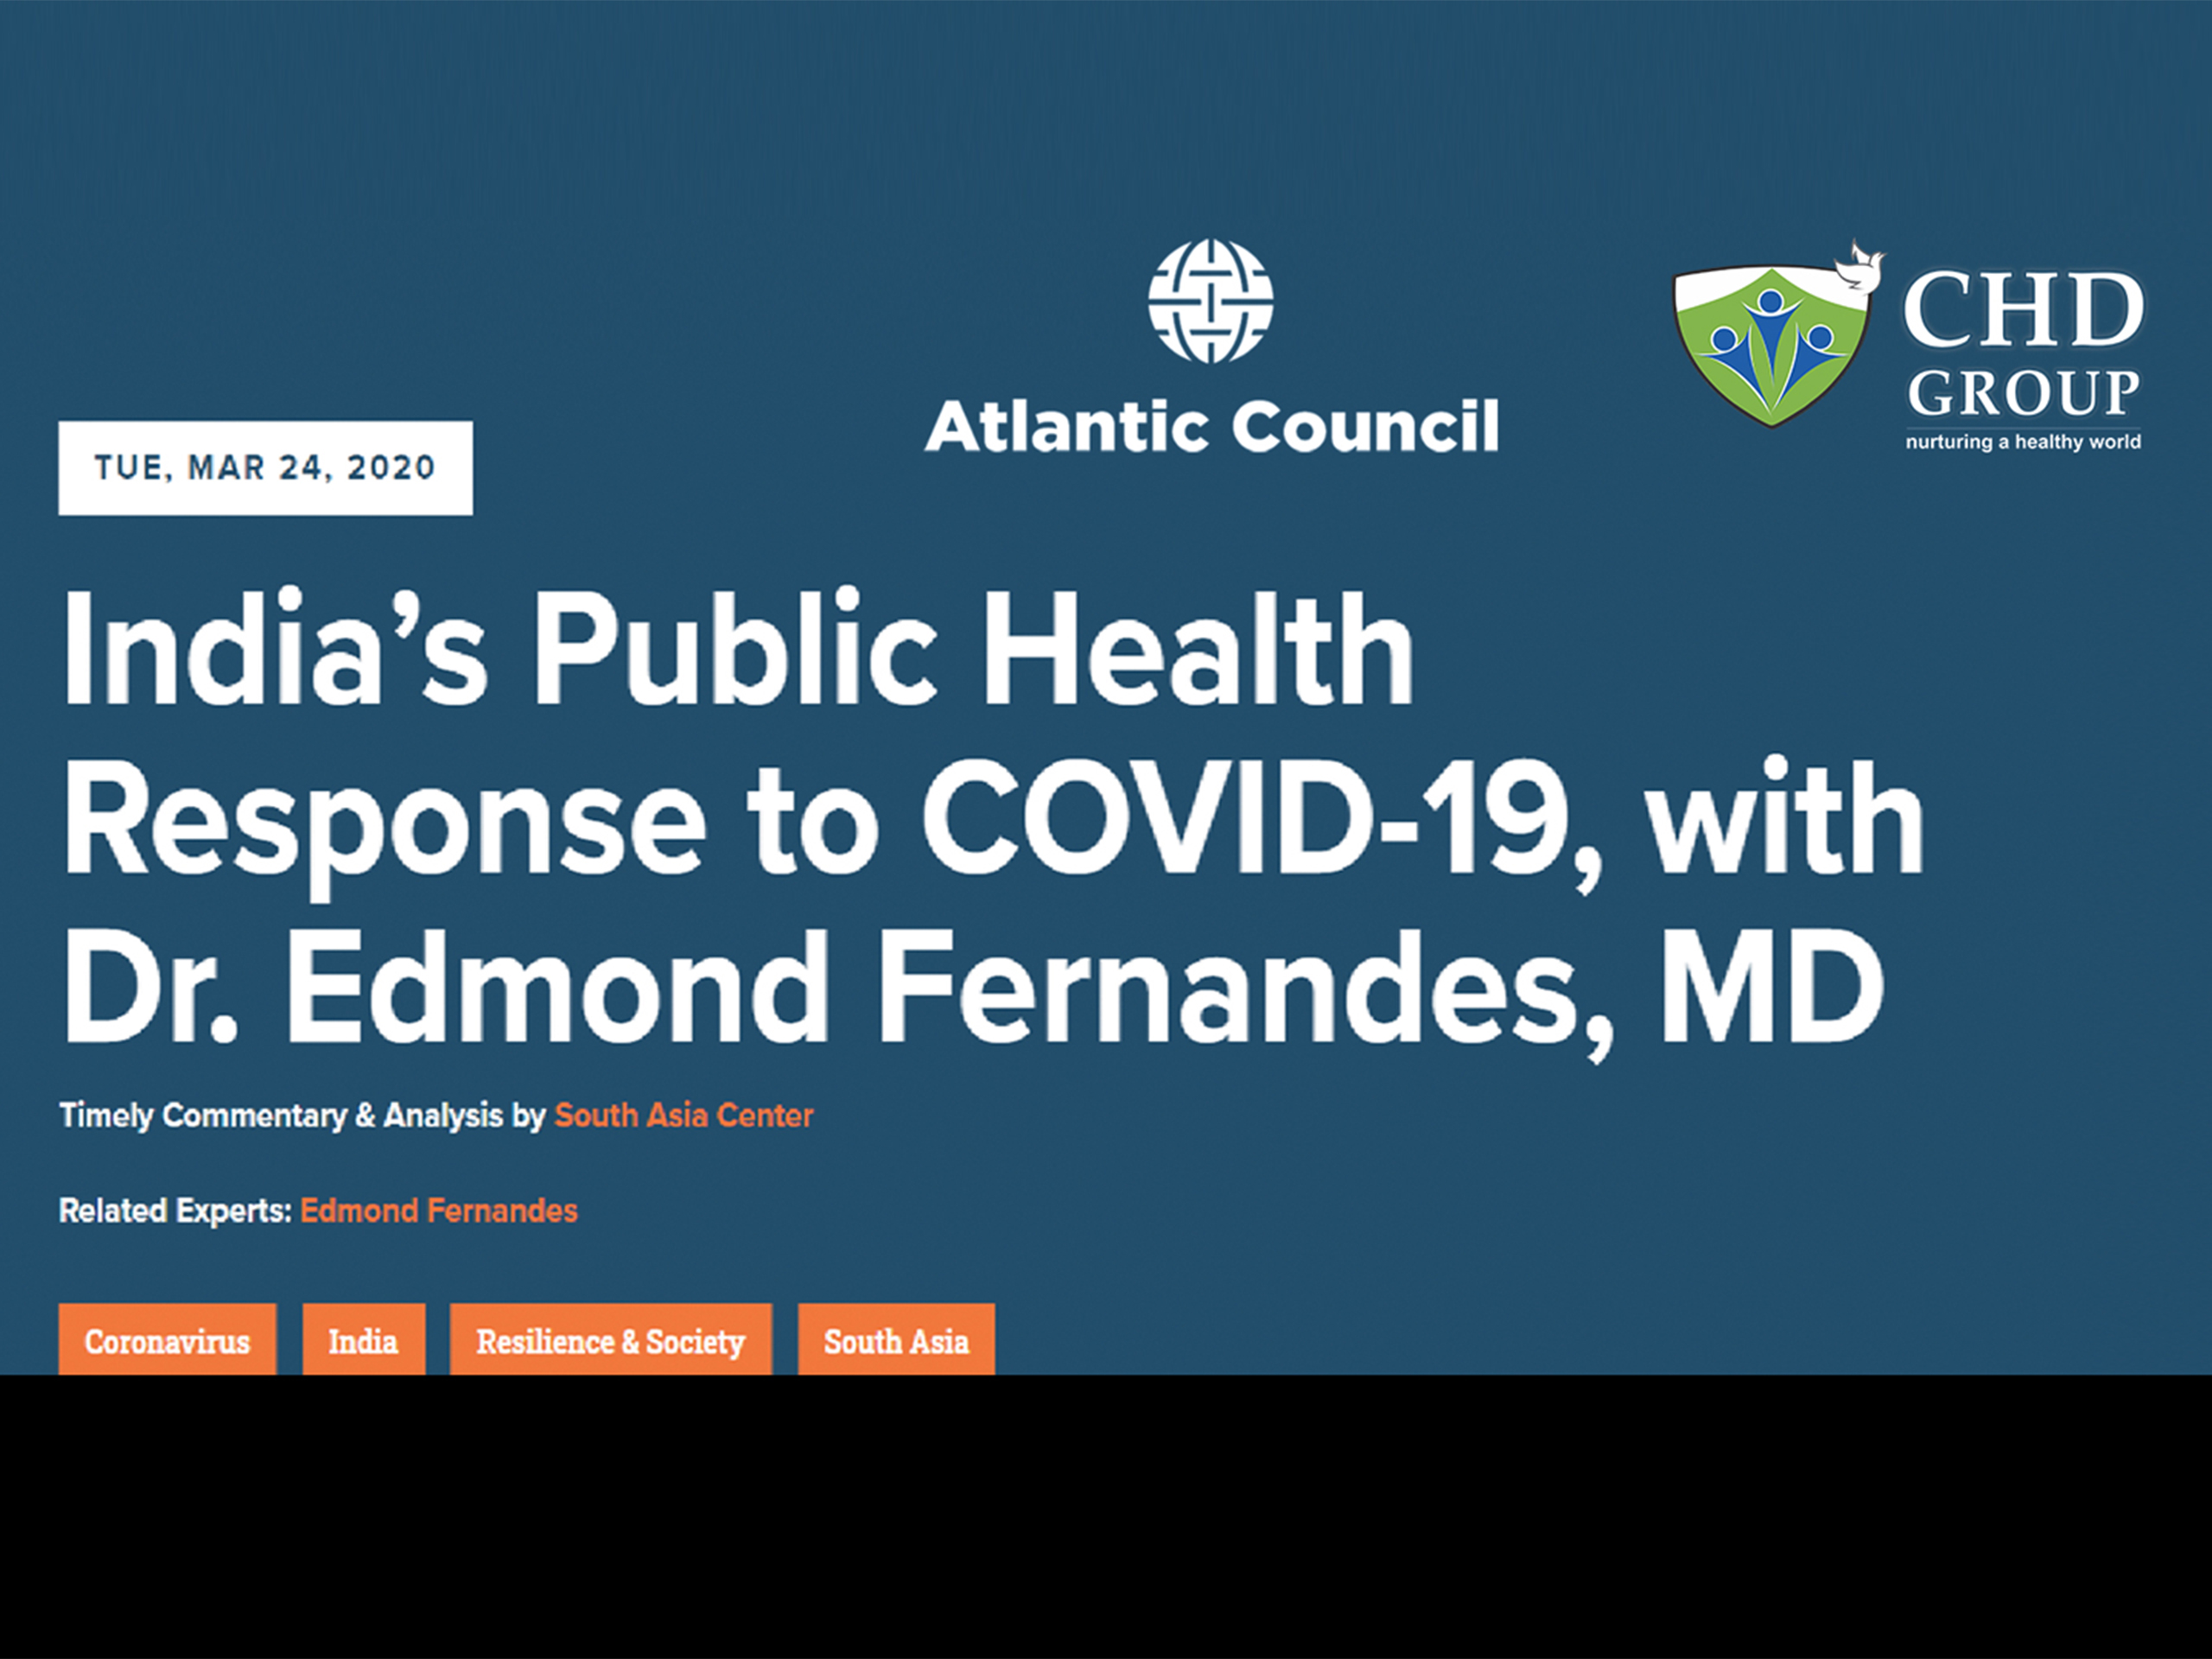 India's public health response to COVID-19 with Dr. Edmond Fernandes, MD